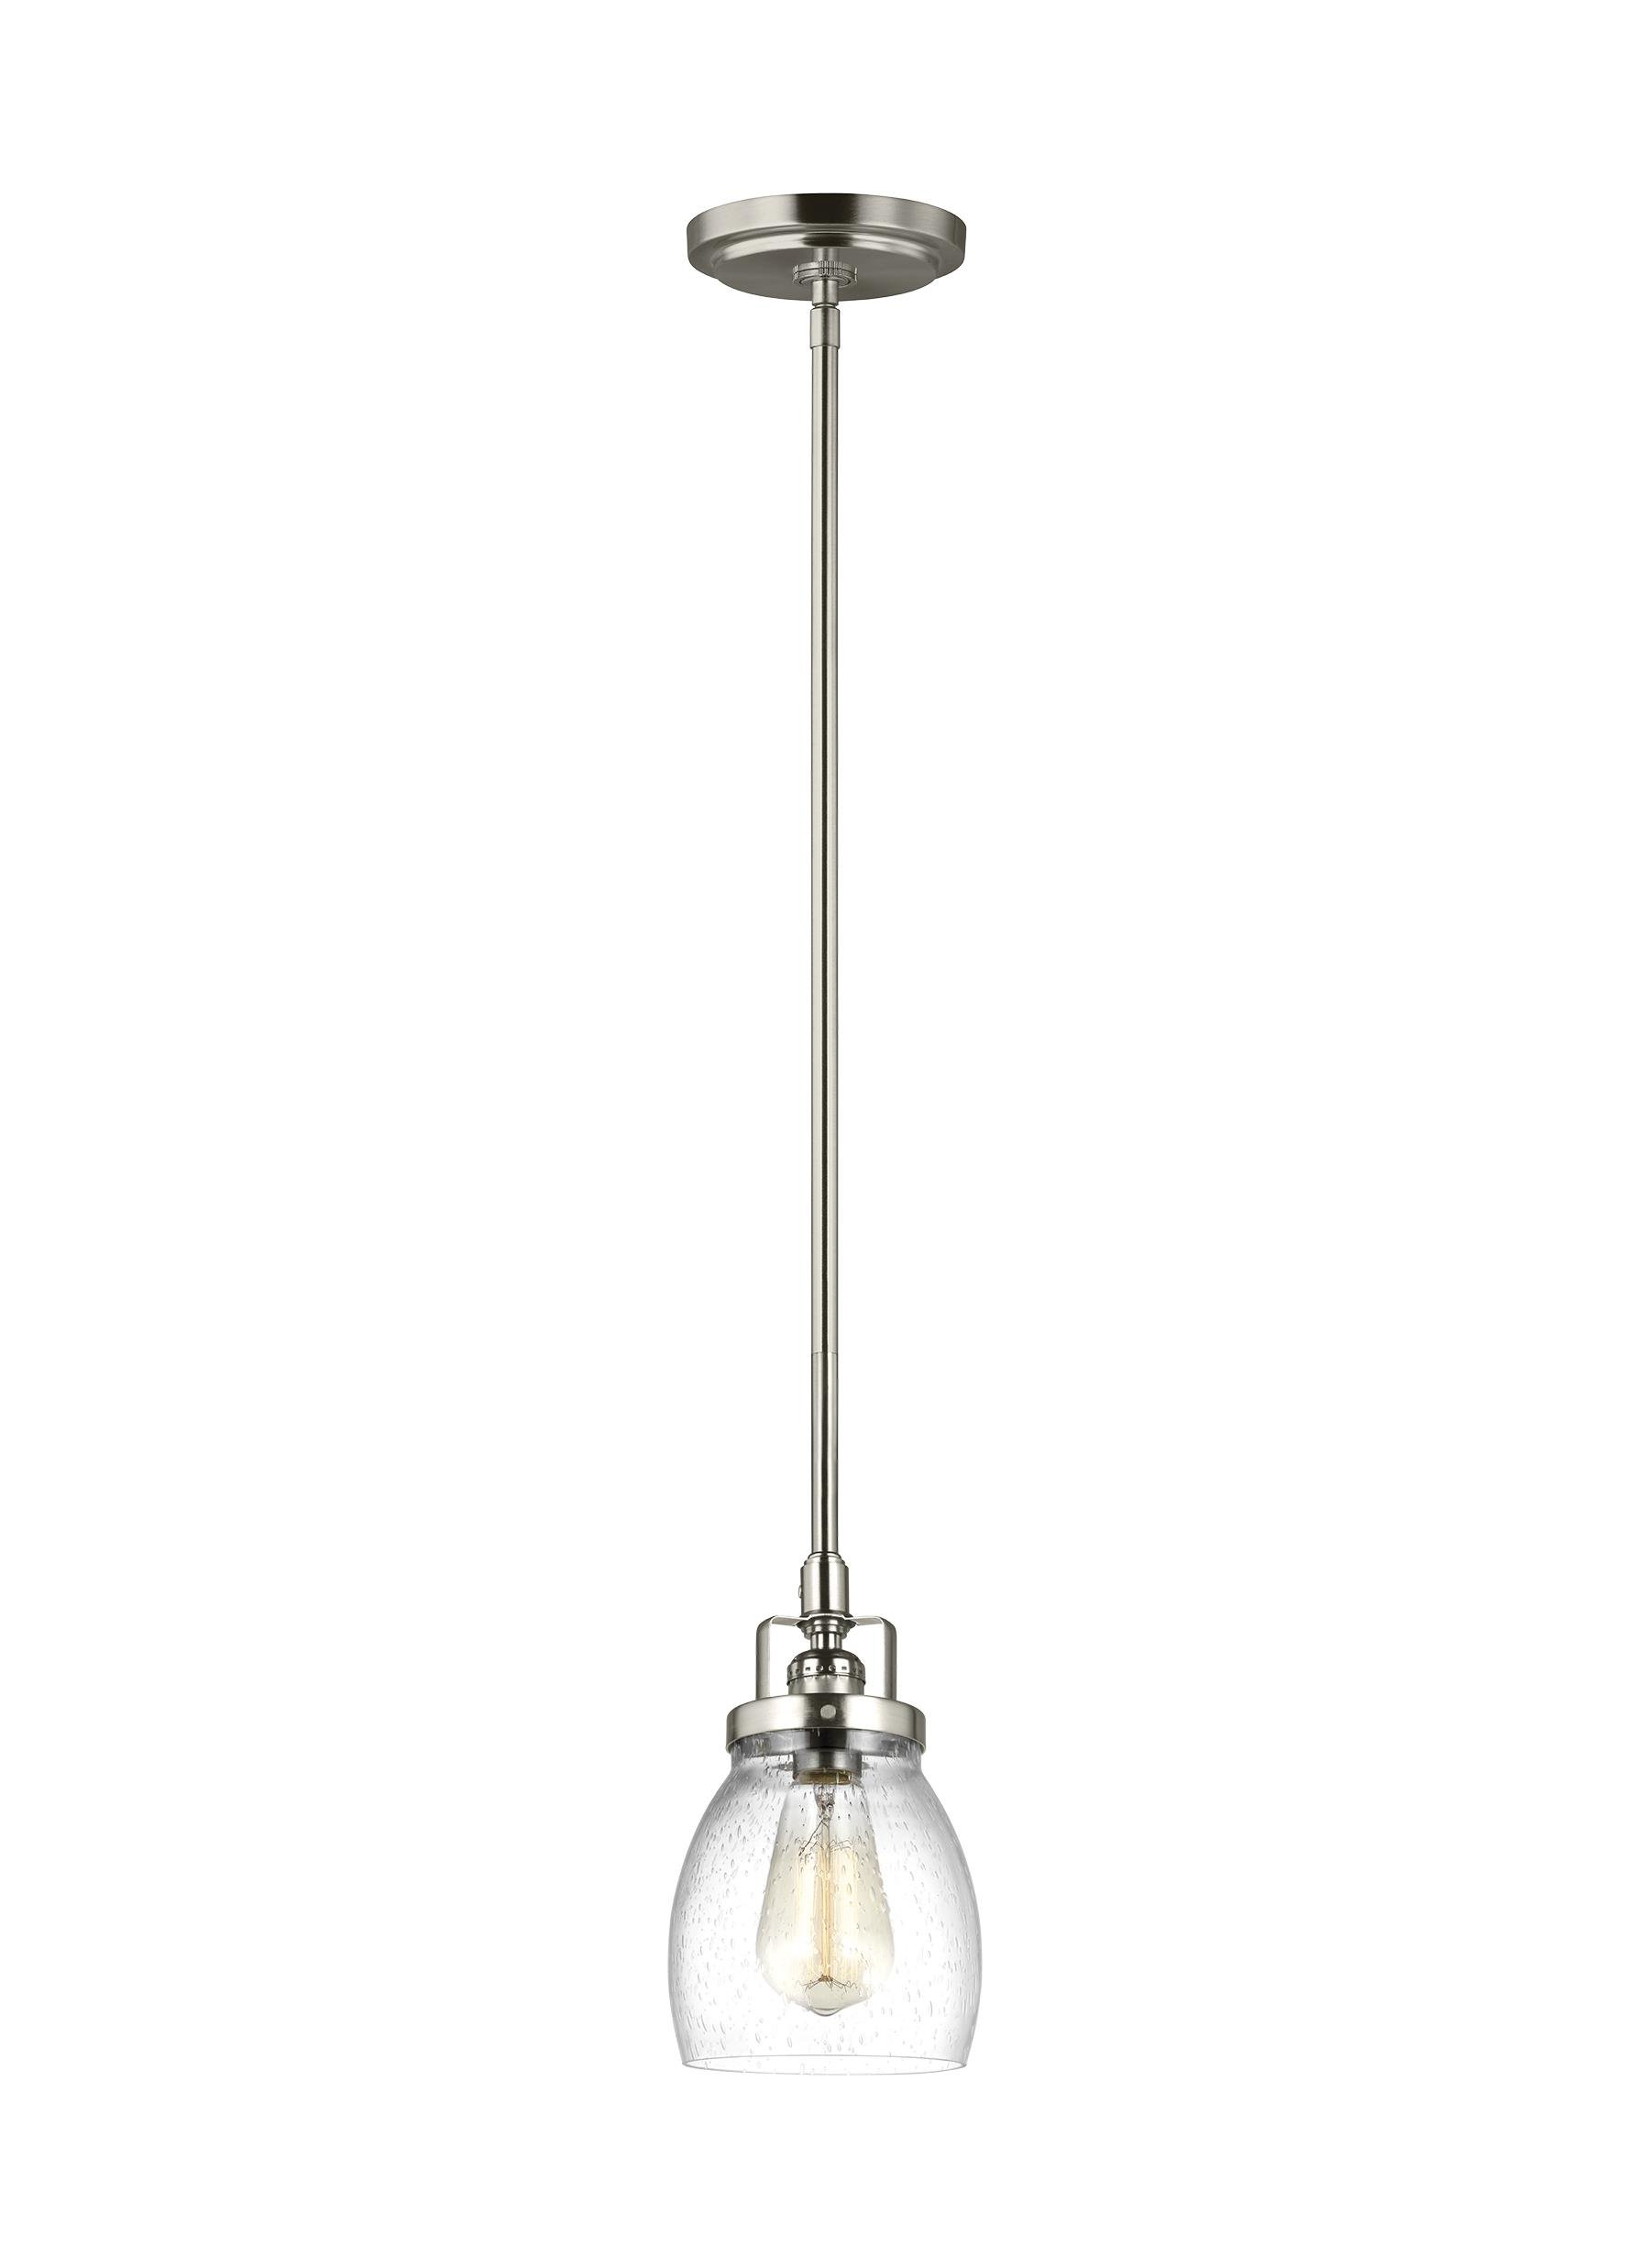 Houon 1 Light Cone Bell Pendant With Regard To Trendy Houon 1 Light Cone Bell Pendants (Gallery 2 of 20)